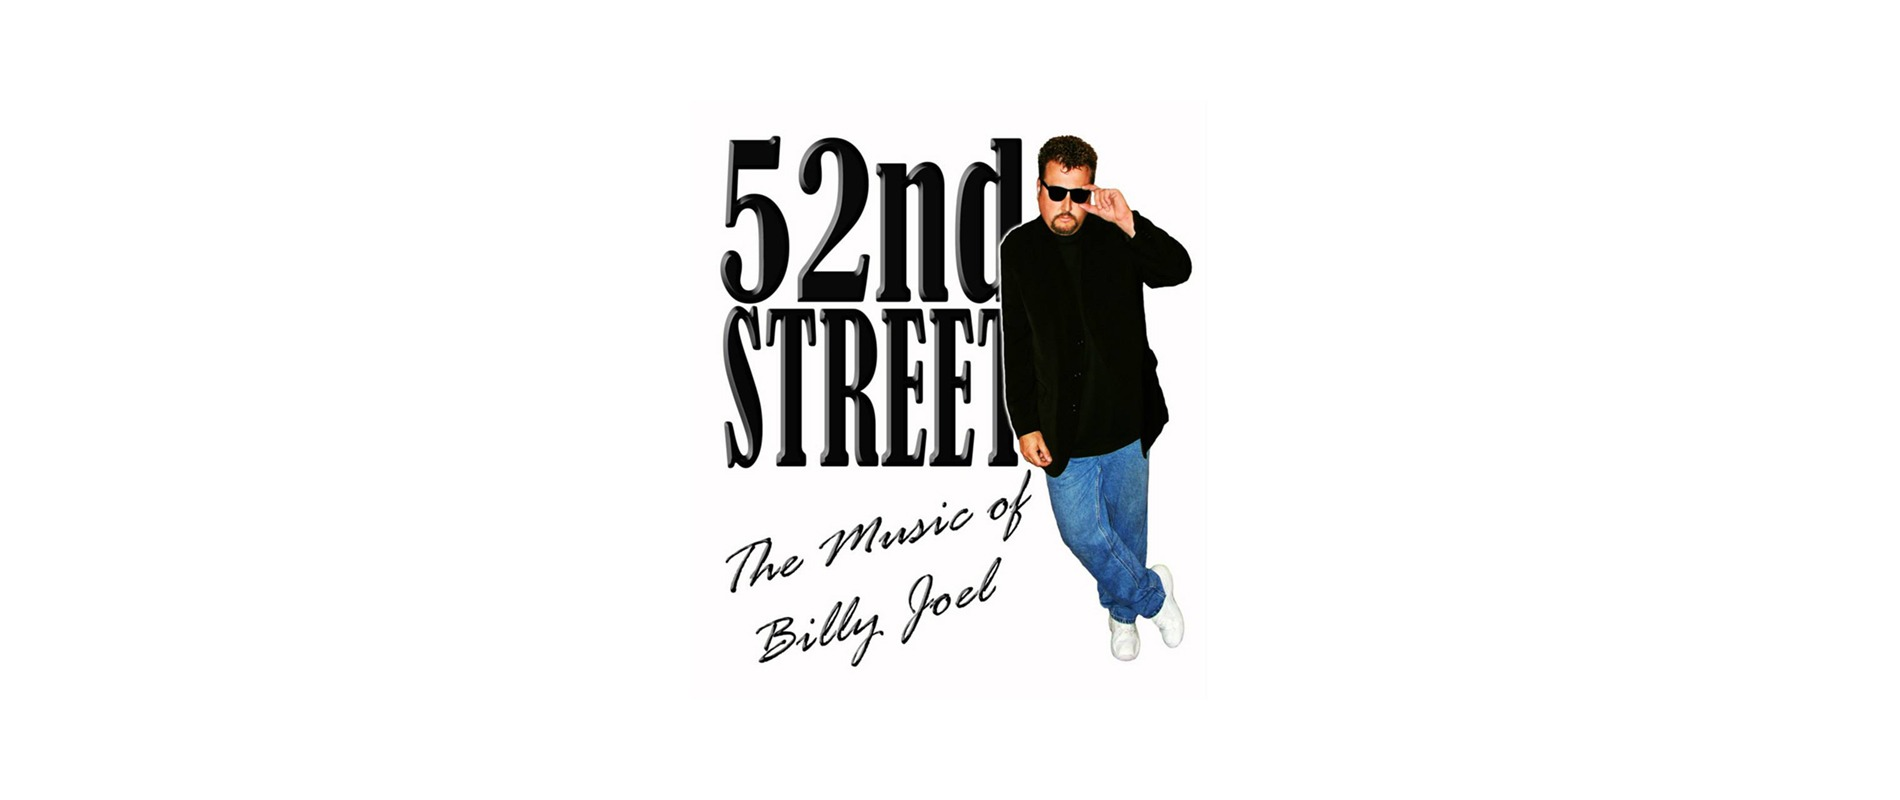 52nd Street the music of Billy Joel